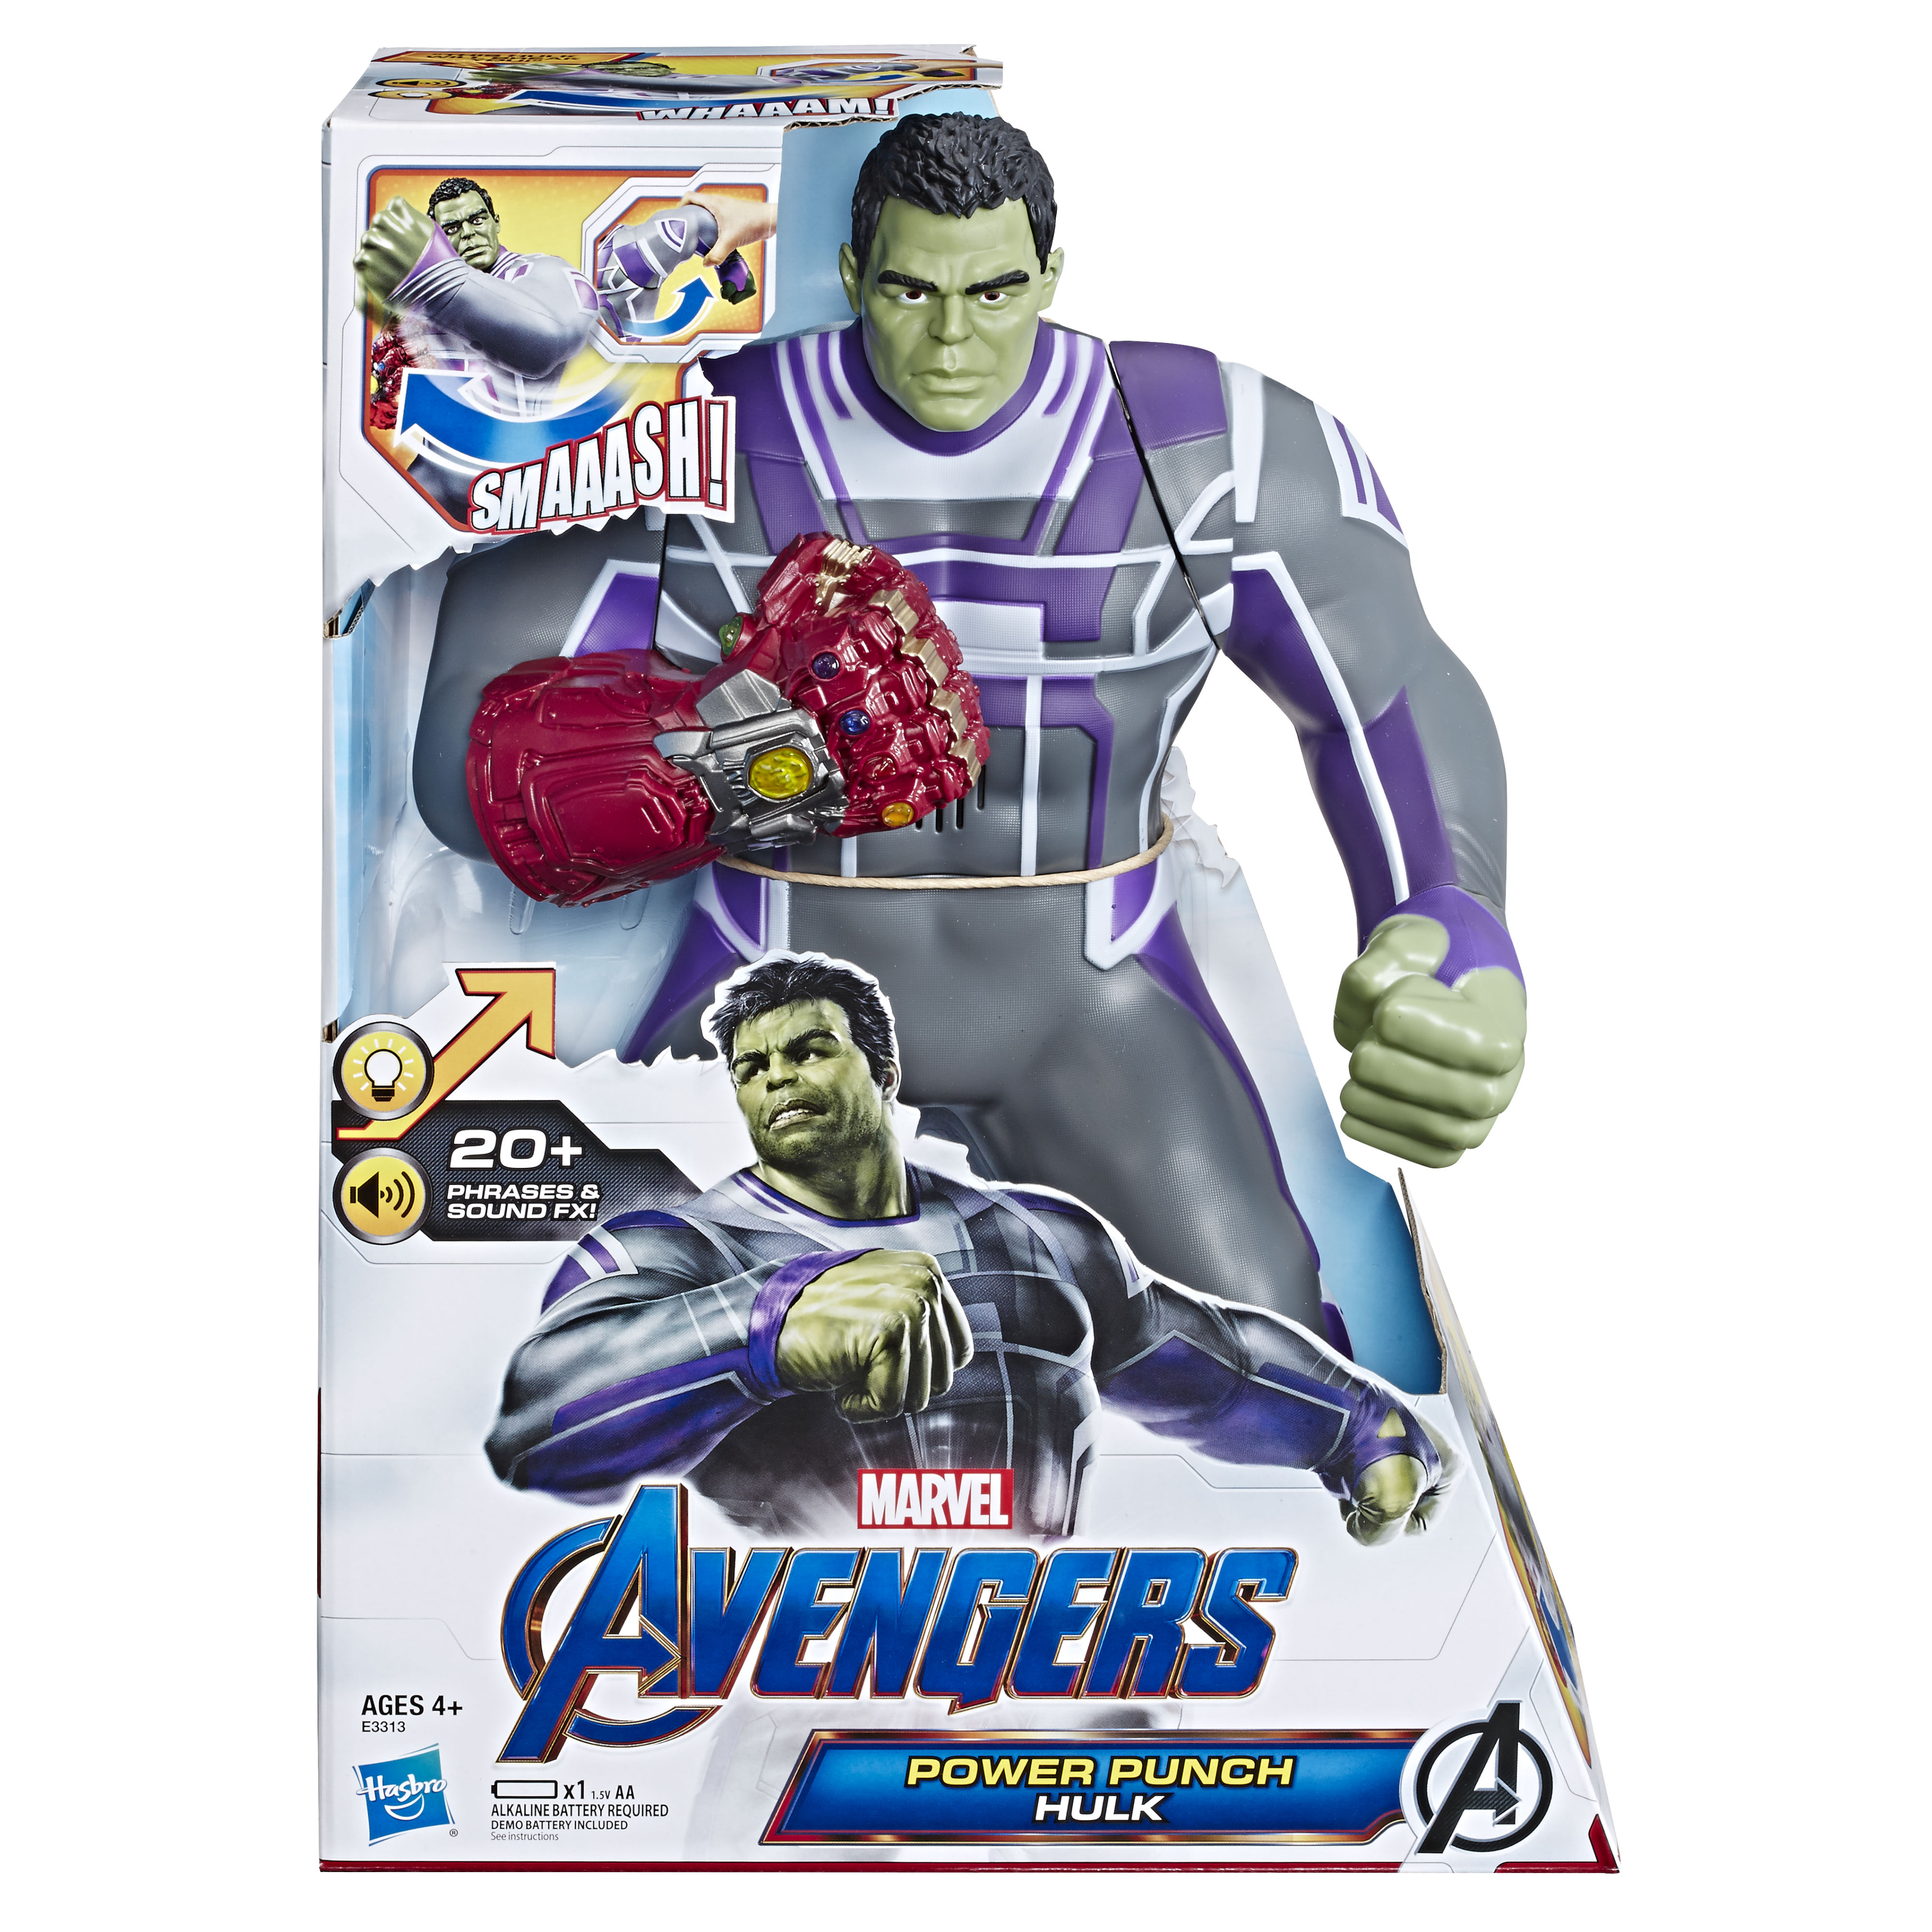 14-inch Power Punch Hulk in-package